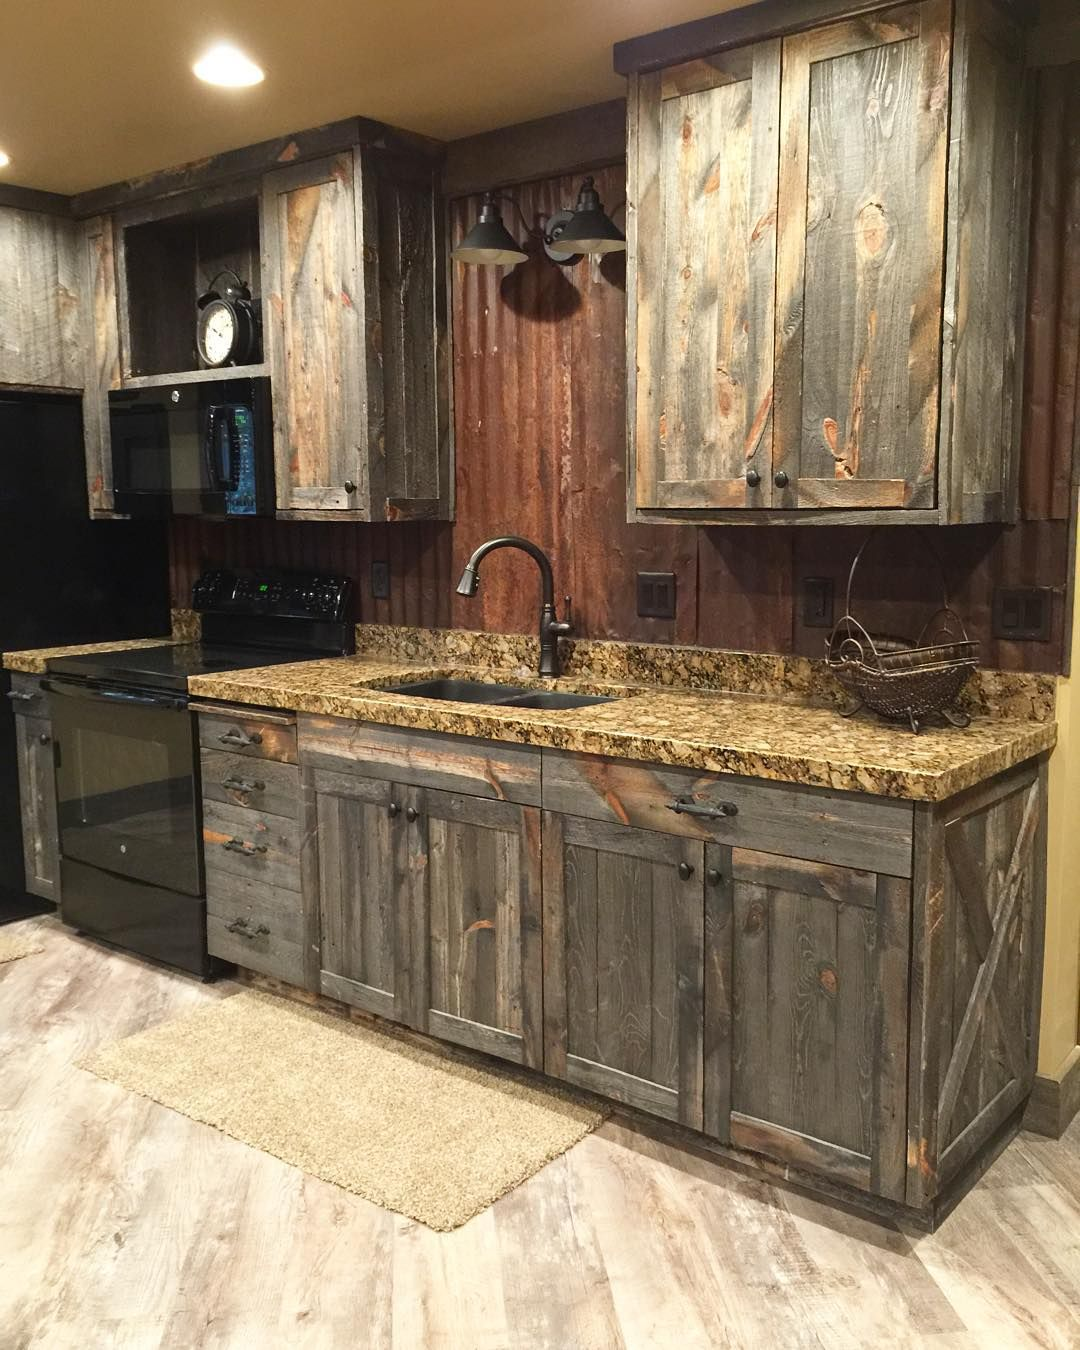 a little barnwood kitchen cabinets and corrugated steel With barn wood style kitchen cabinets